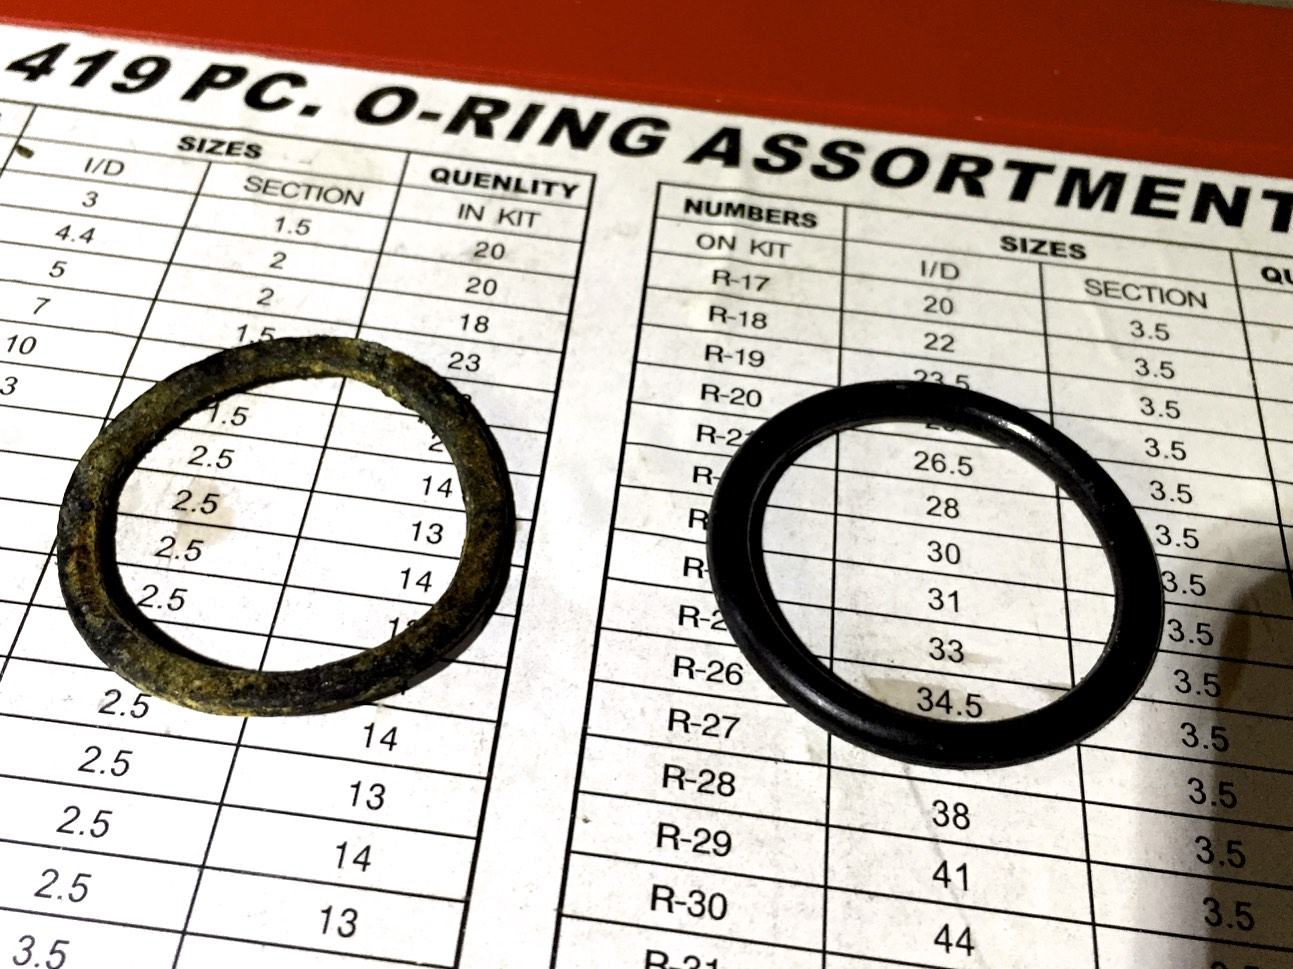 The old (left) and new (right) O-rings from my O-ring assortment.